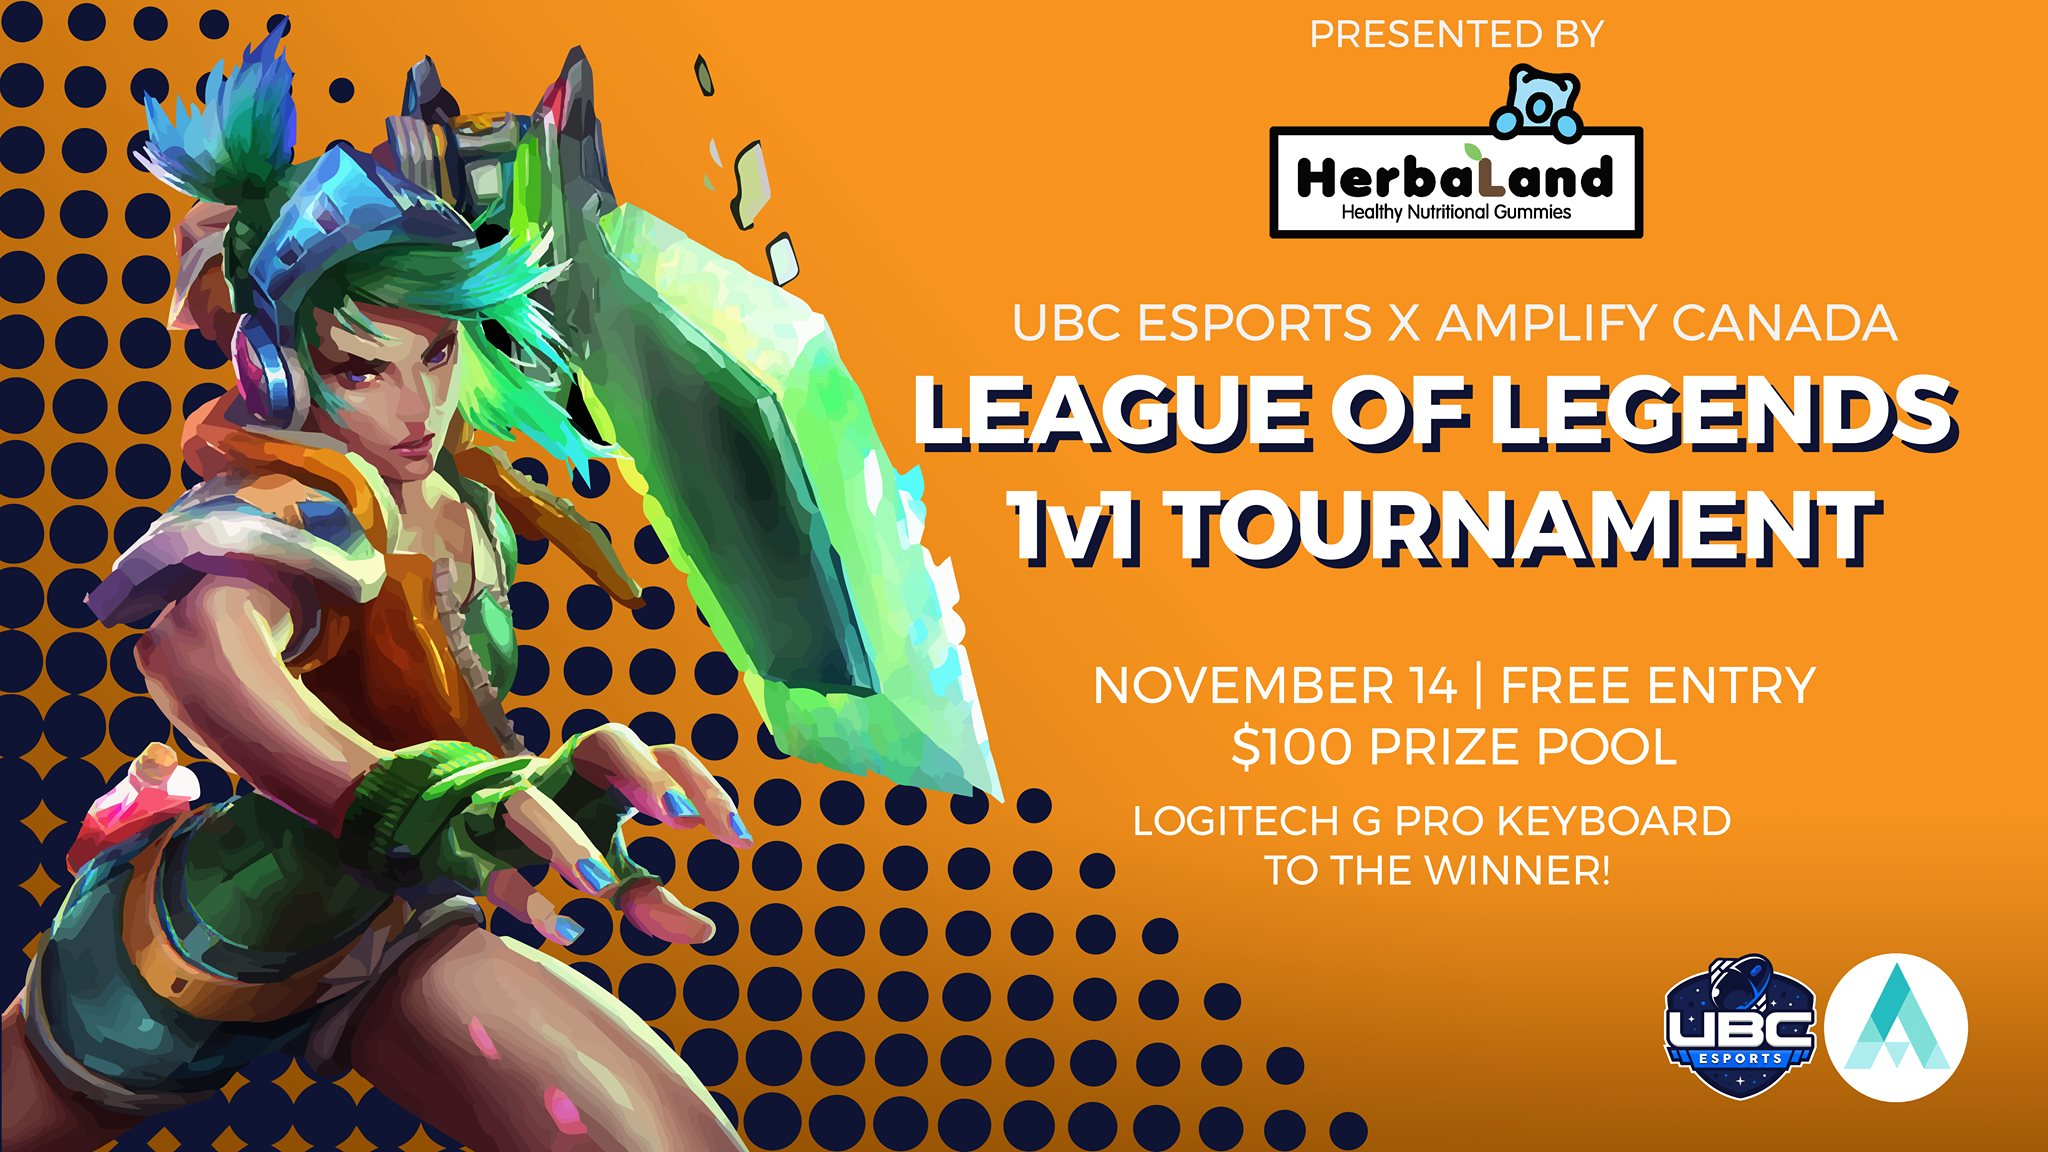 UBCEA x Amplify Canada LoL 1v1 Tournament Presented by Herbaland